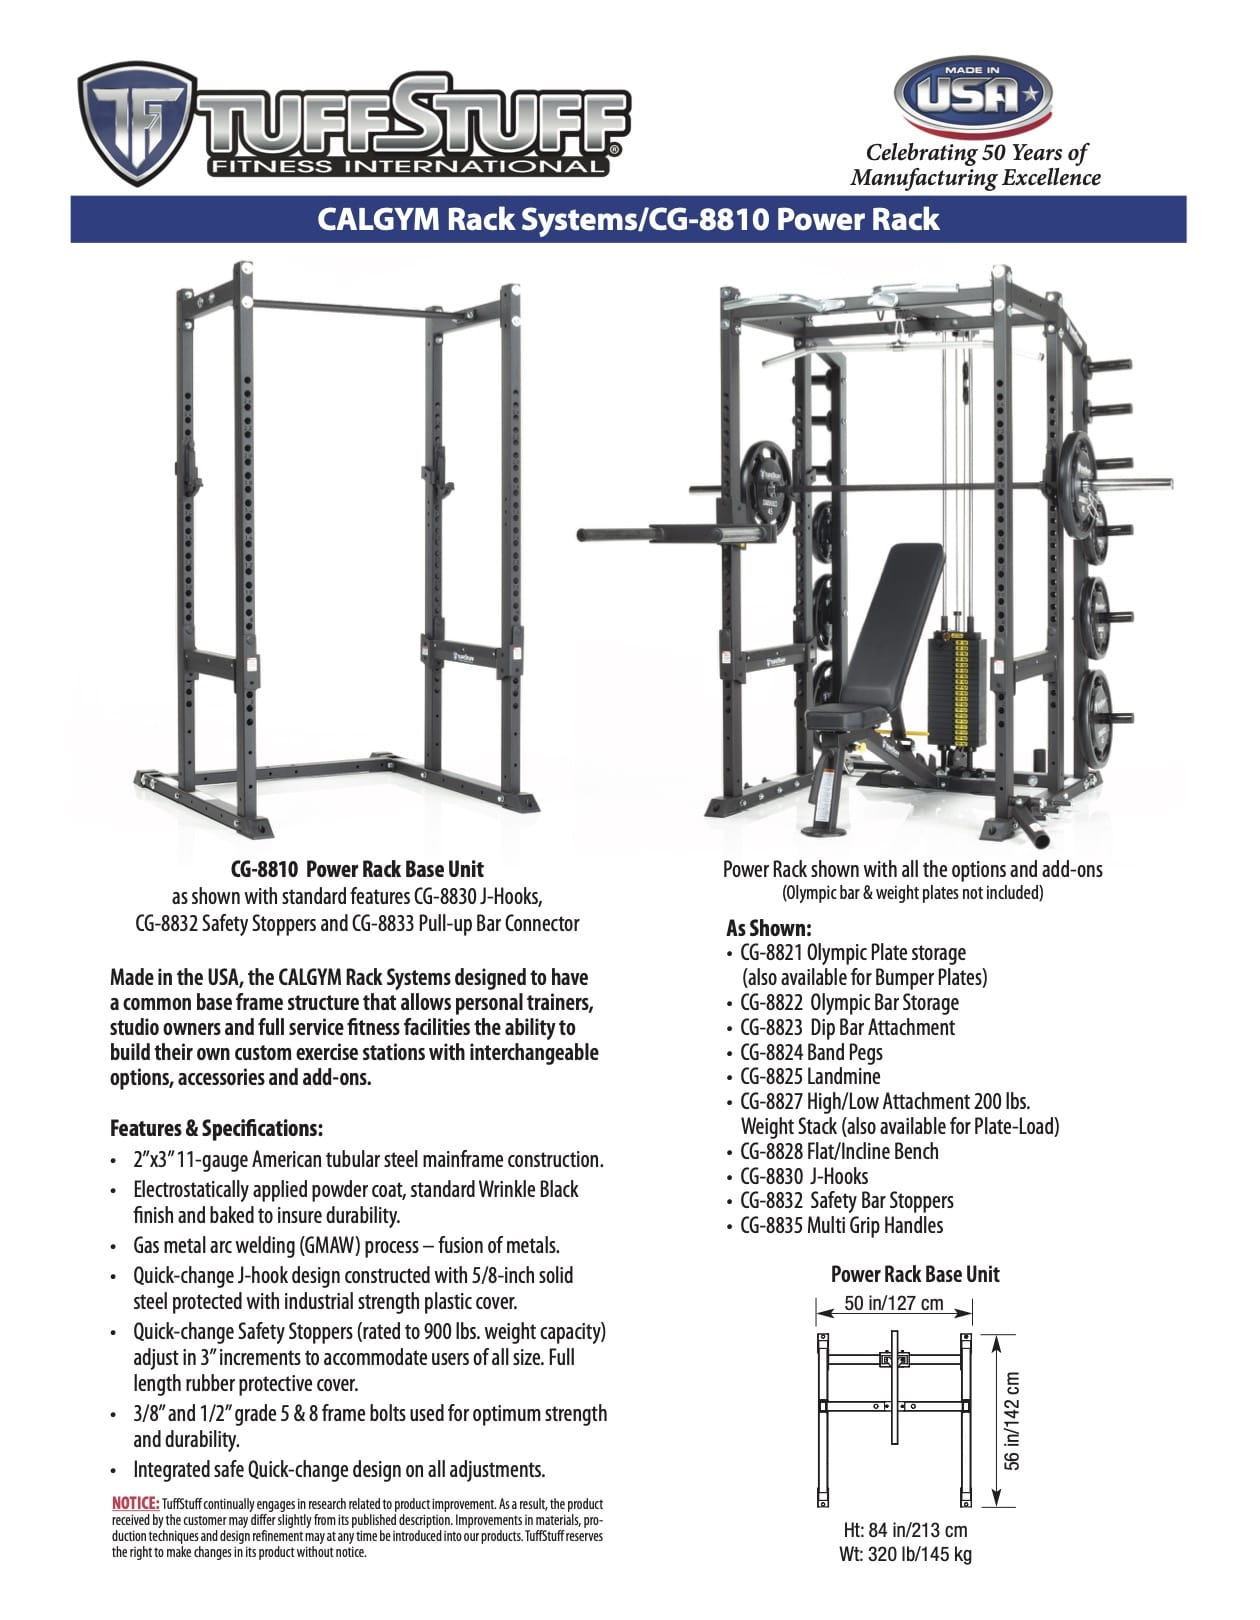 CalGym Power Rack (CG-8810) Product Overview